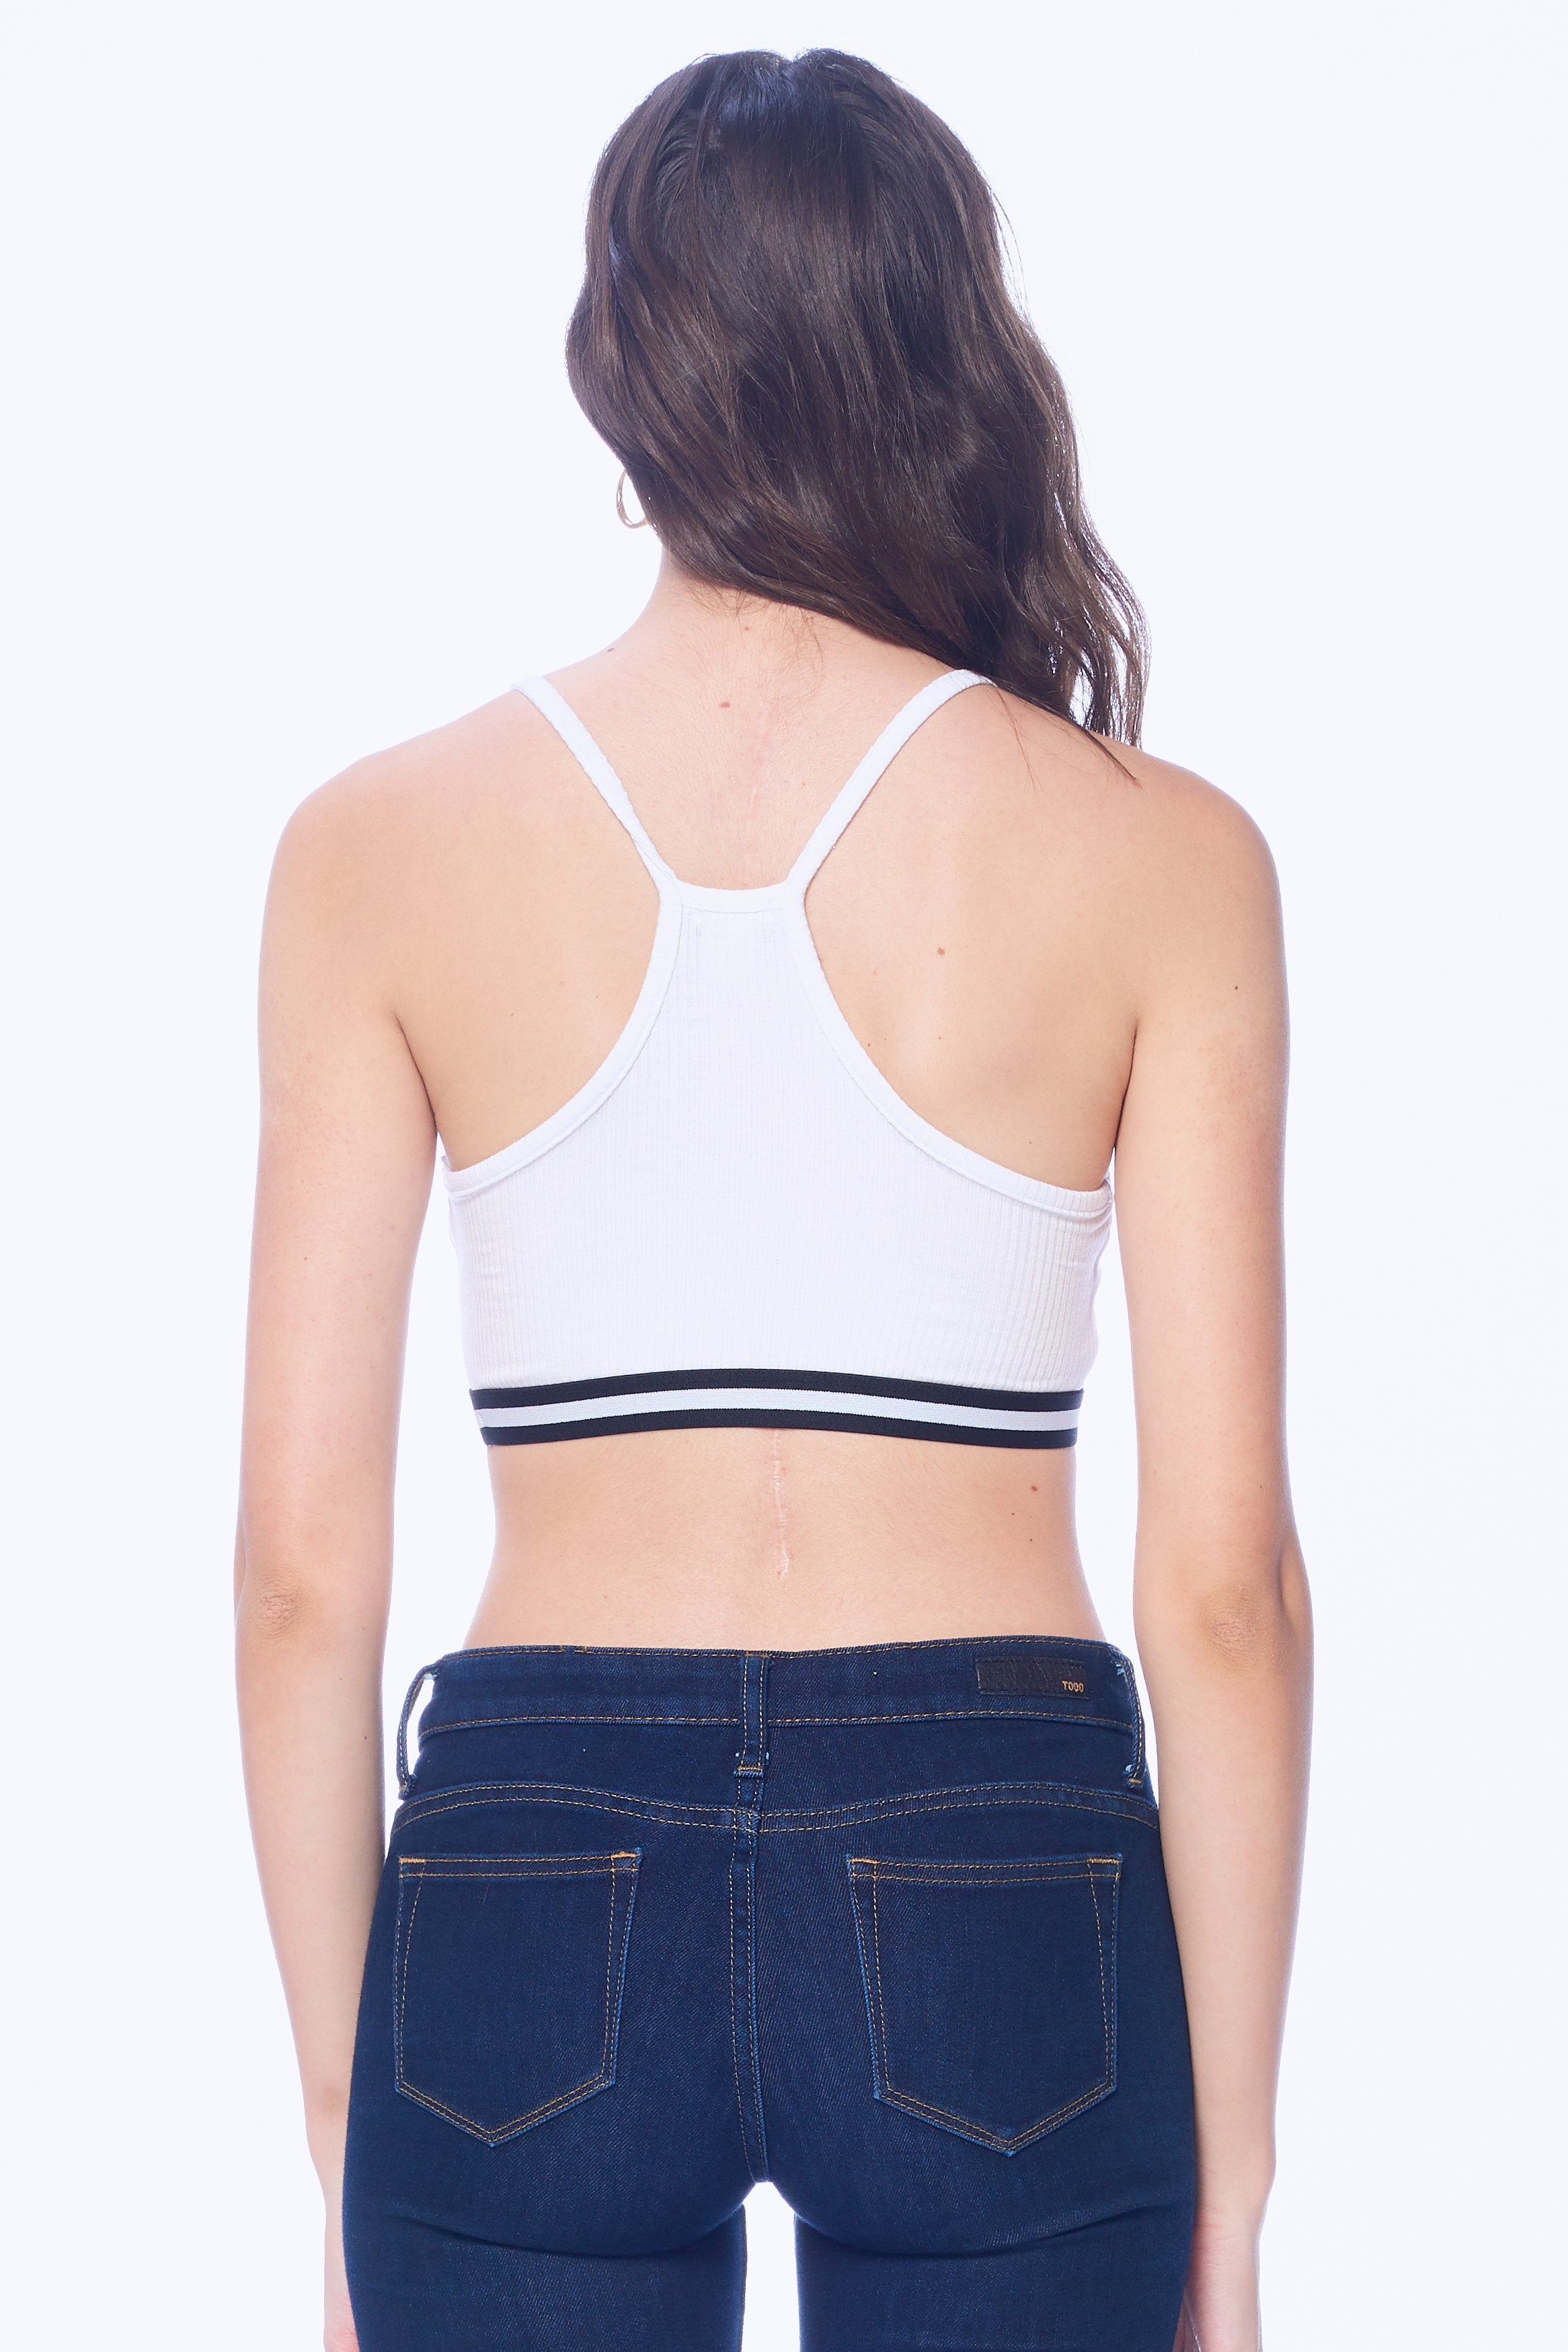 Khanomak Women's Ribbed Active Workout Sports Bra Racer Back Crop Top